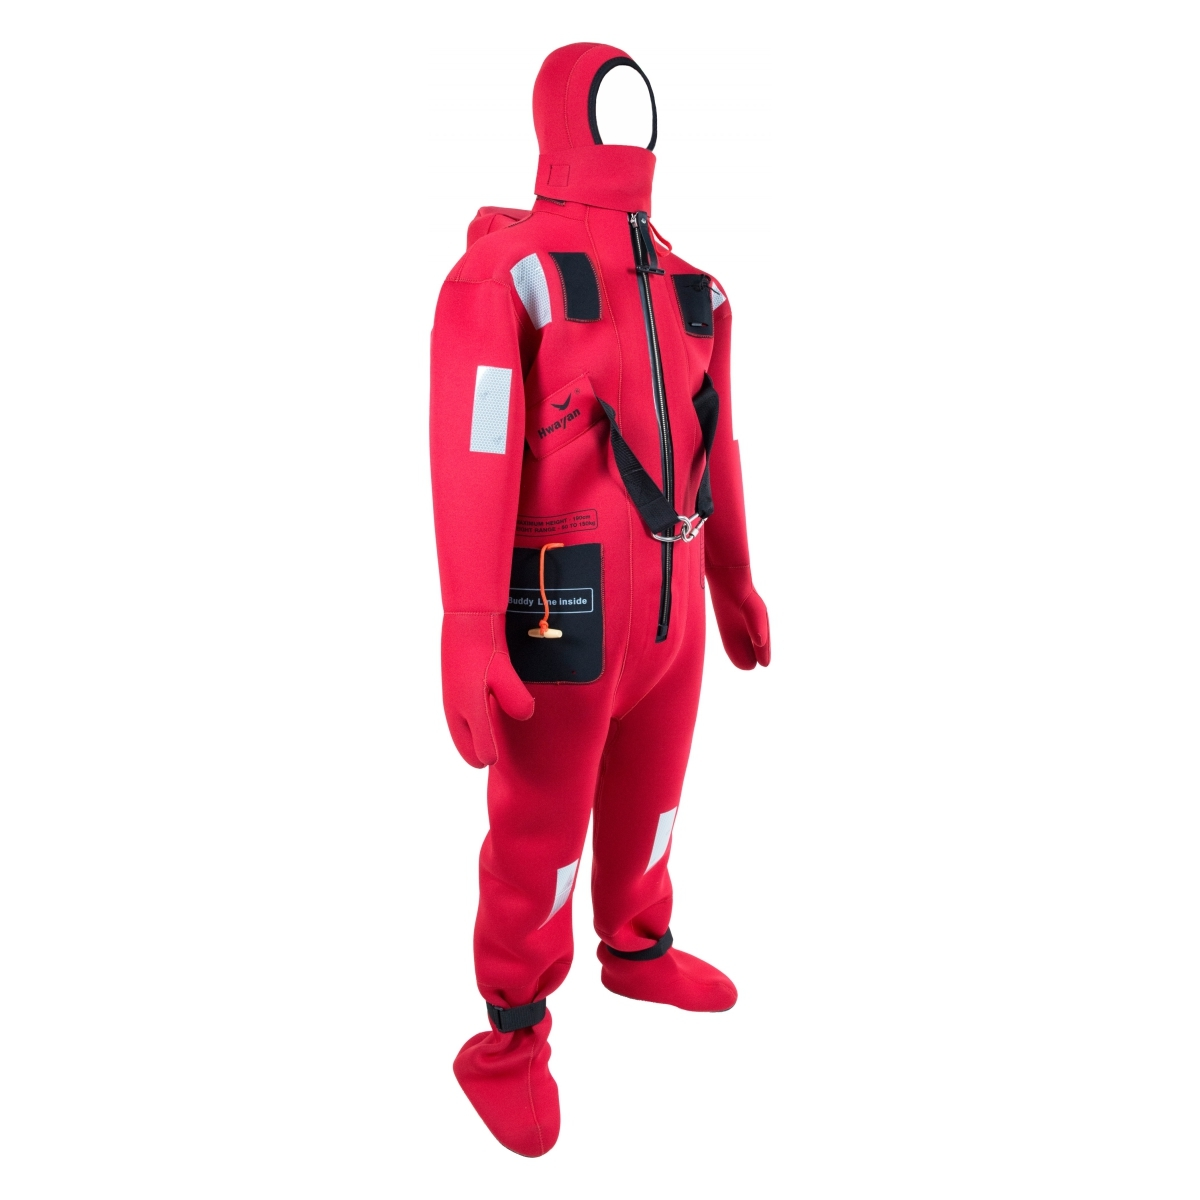 Solas insulated immersion suit